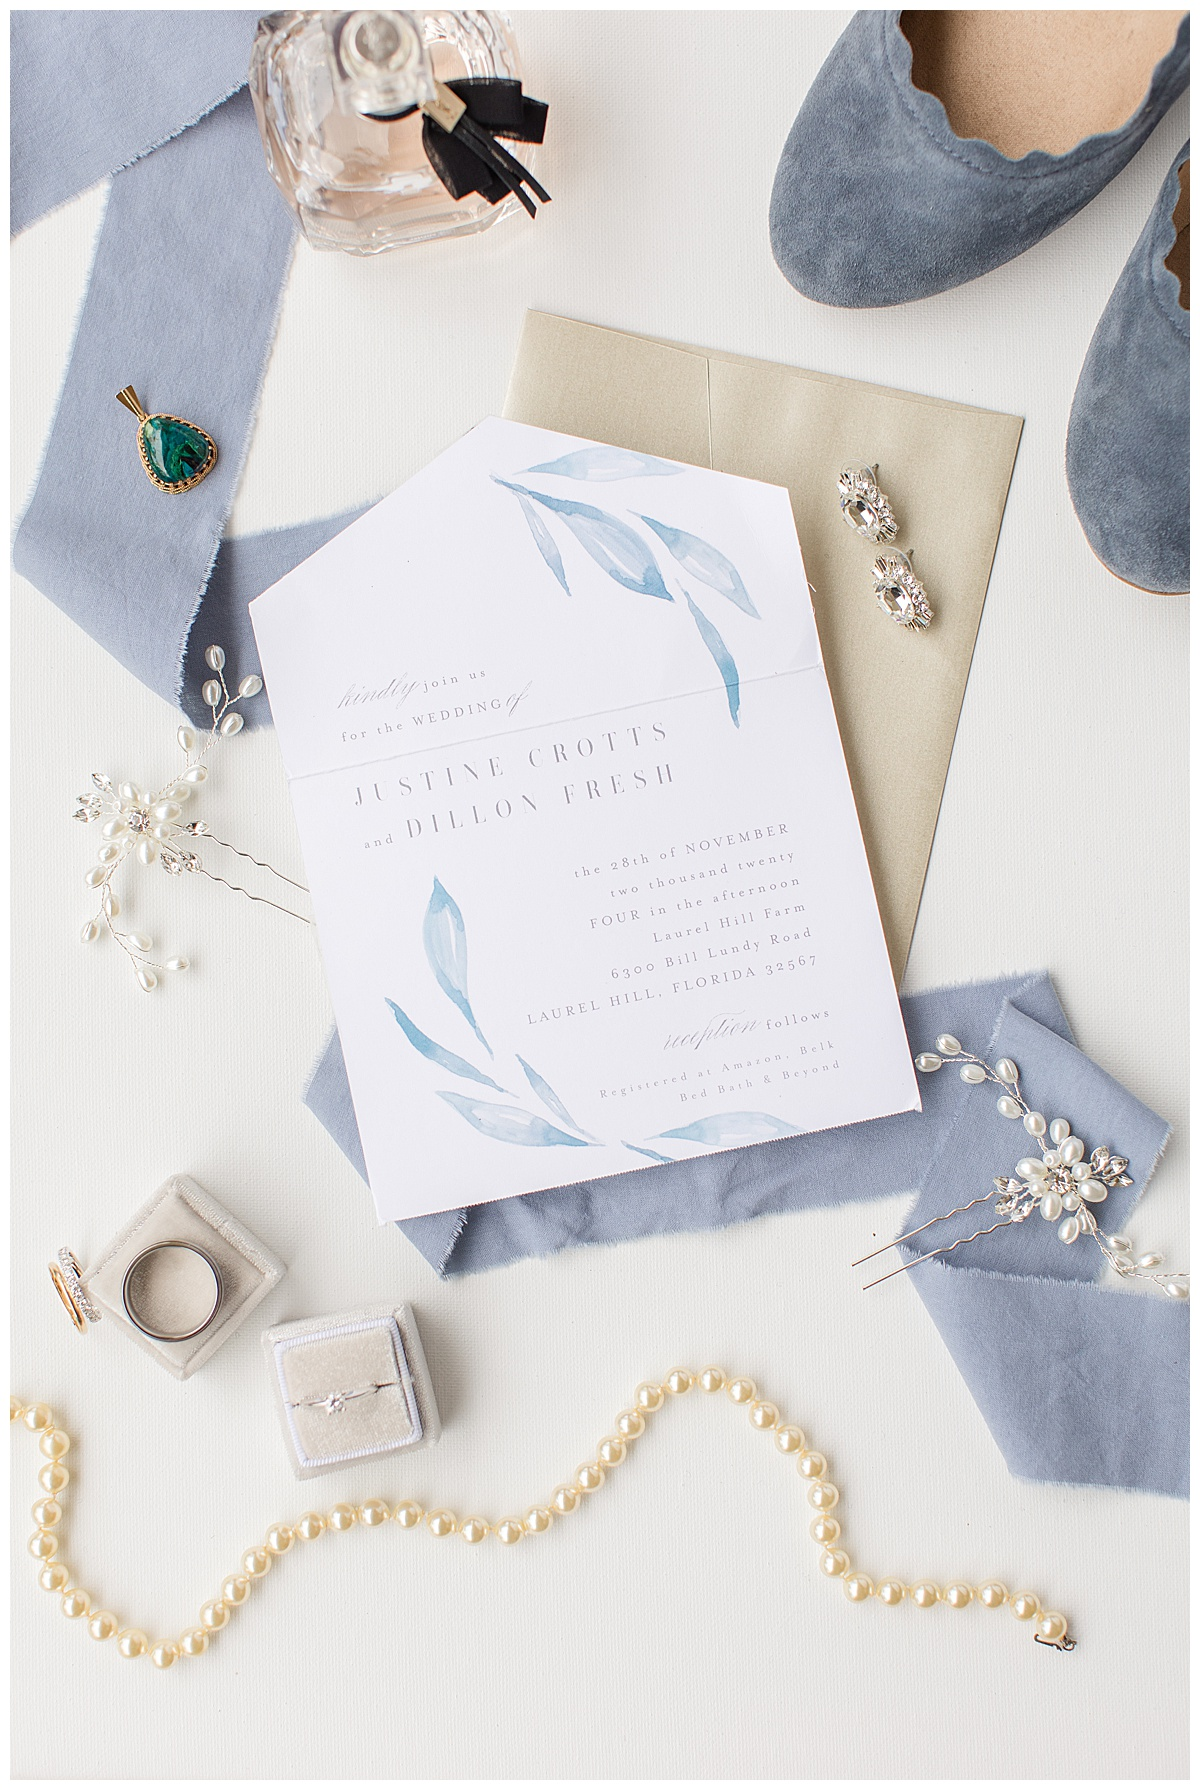 Bridal Details flat lay photo with pastel blue details for winter wedding